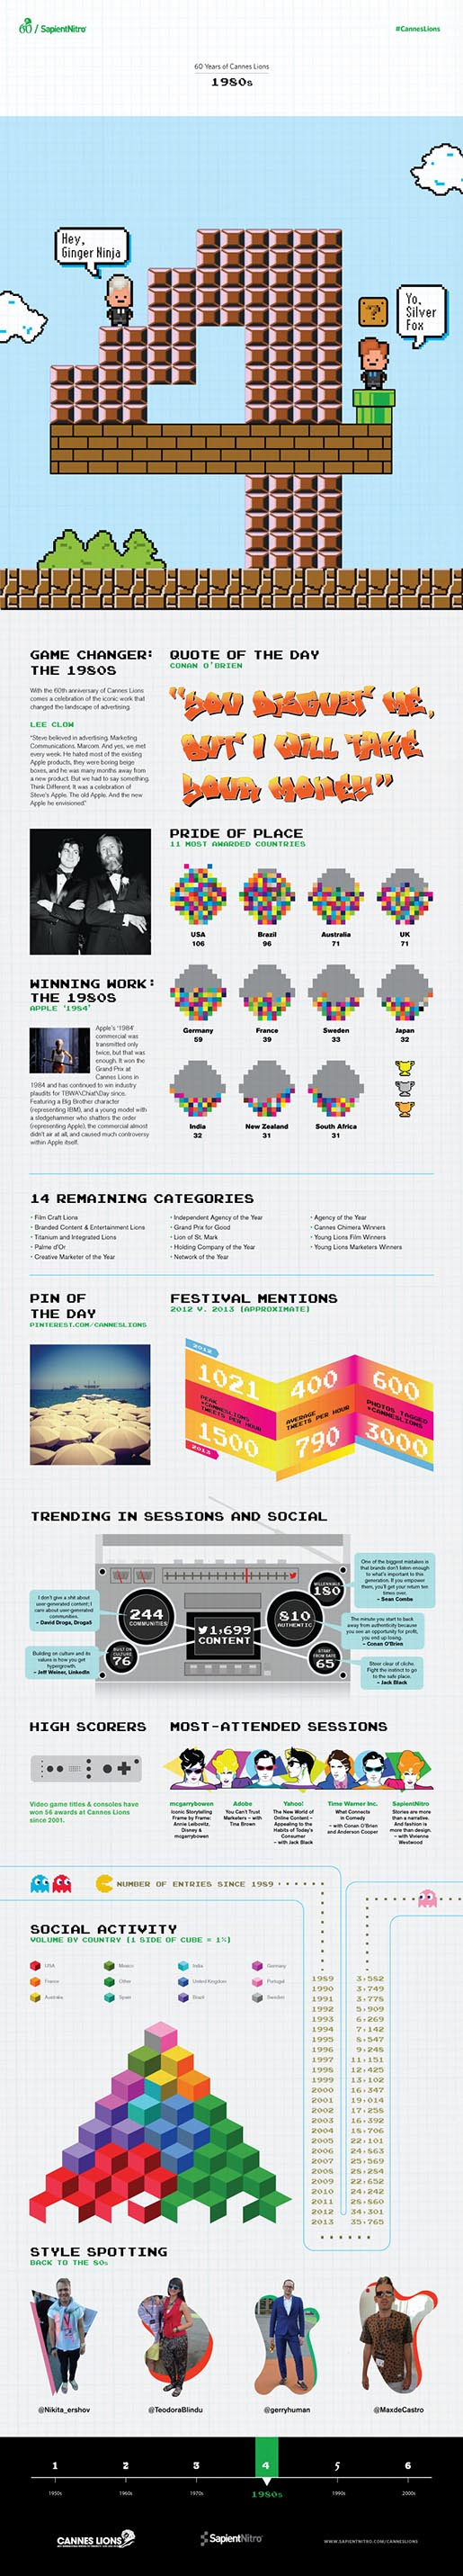 Cannes Lions Infographic 4